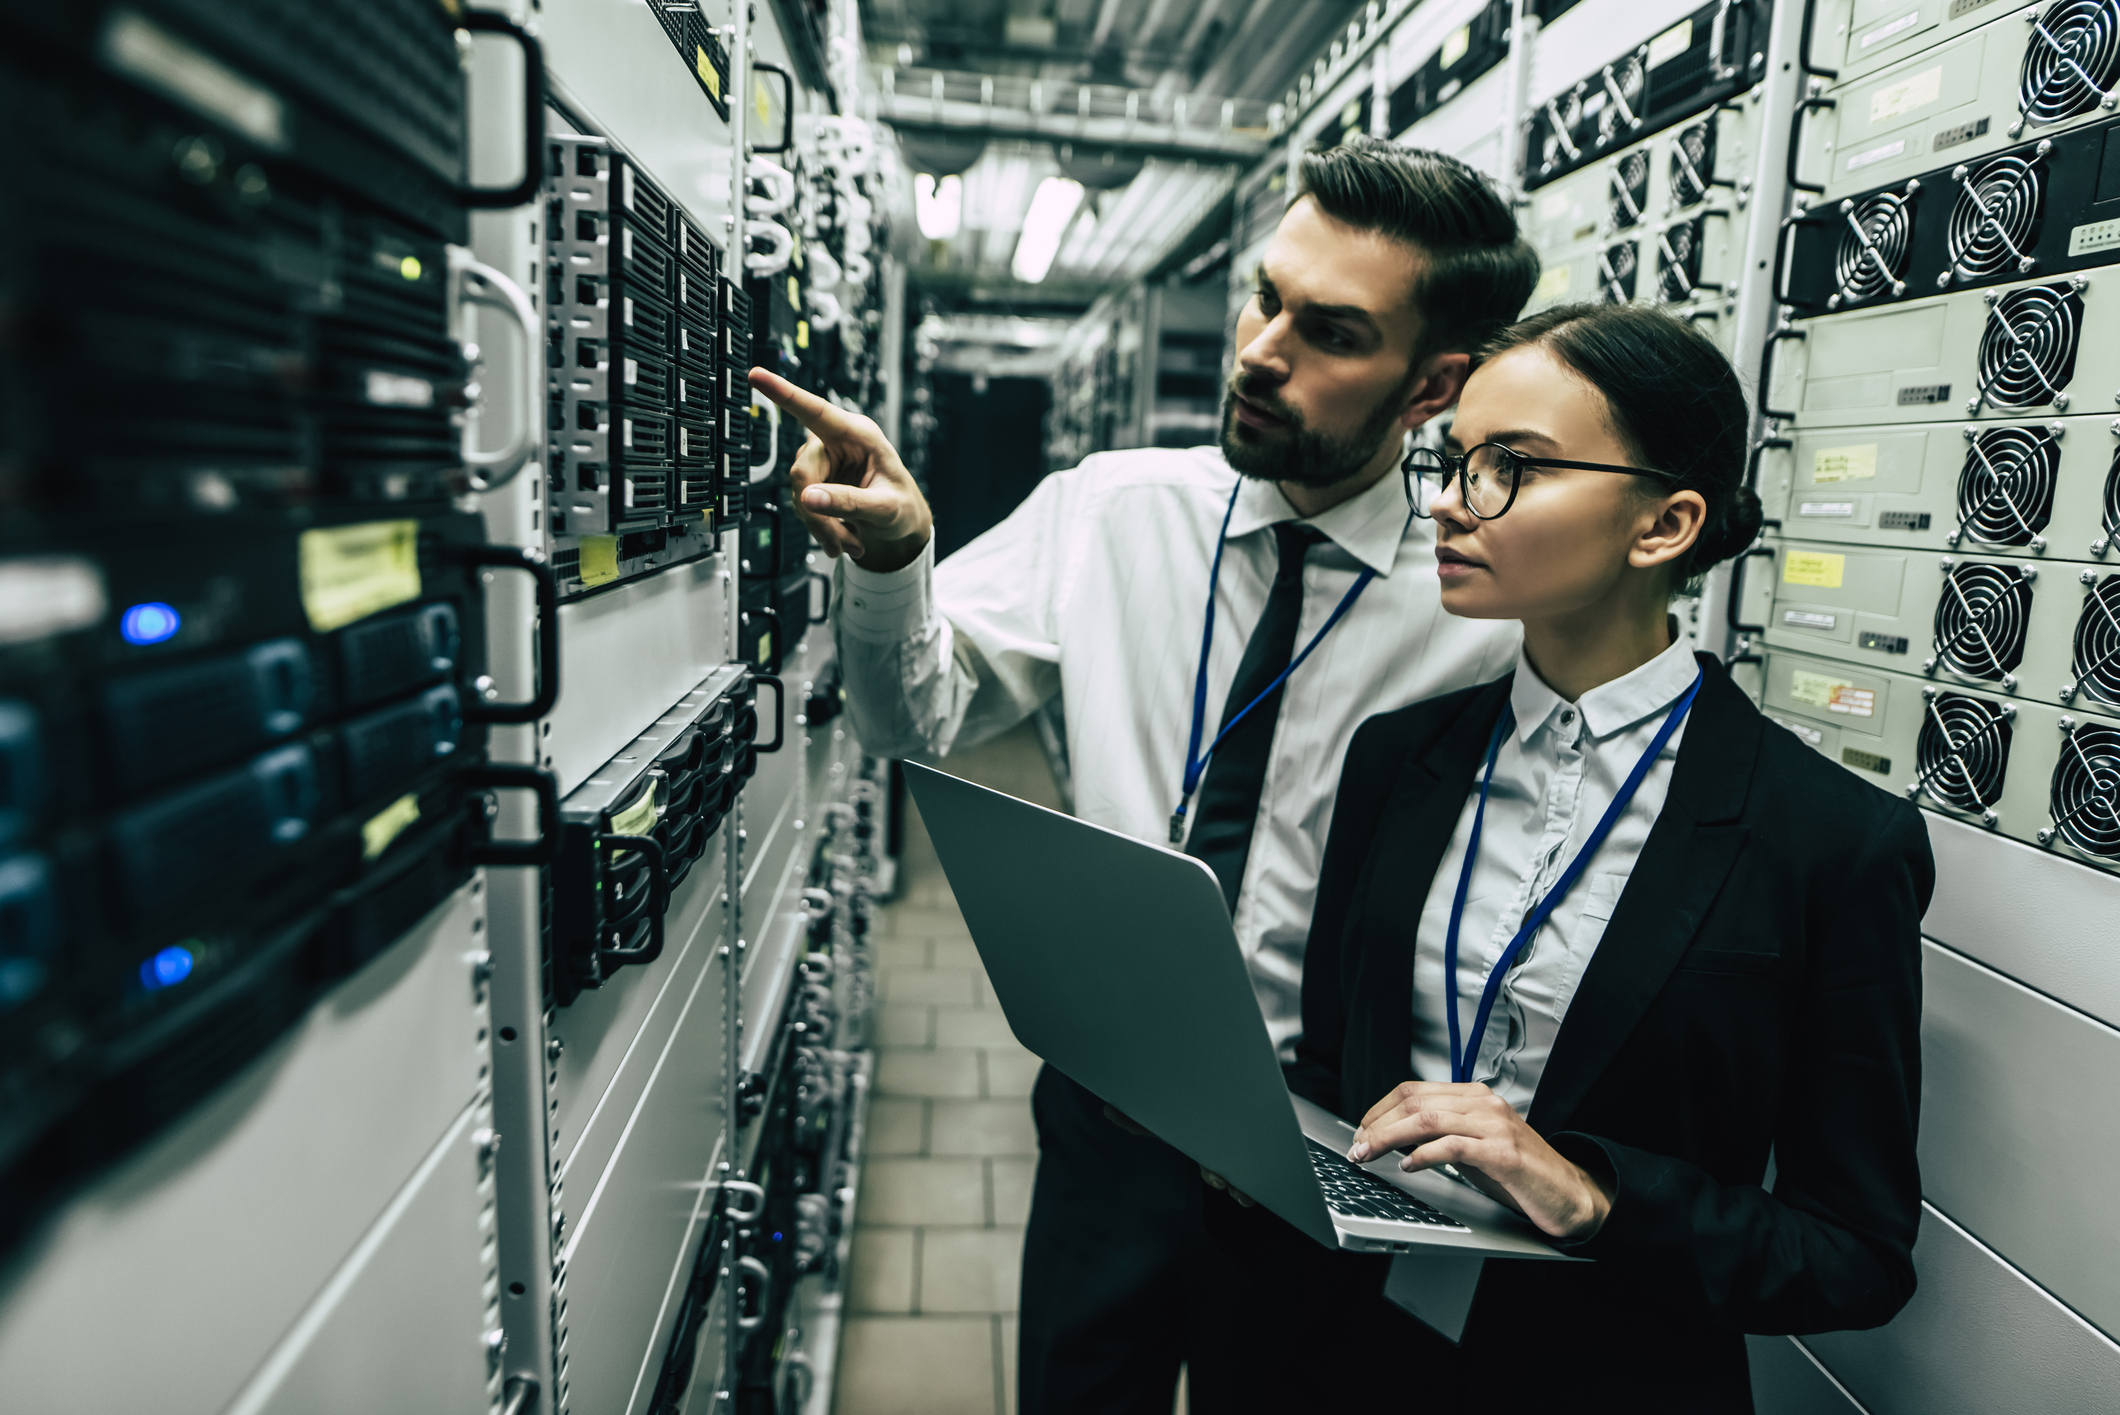 """If the tech/cloud/data center industry wants to change the perception of women then maybe start by getting some better stock photos than some dude mansplaining to a woman taking notes on a laptop."""